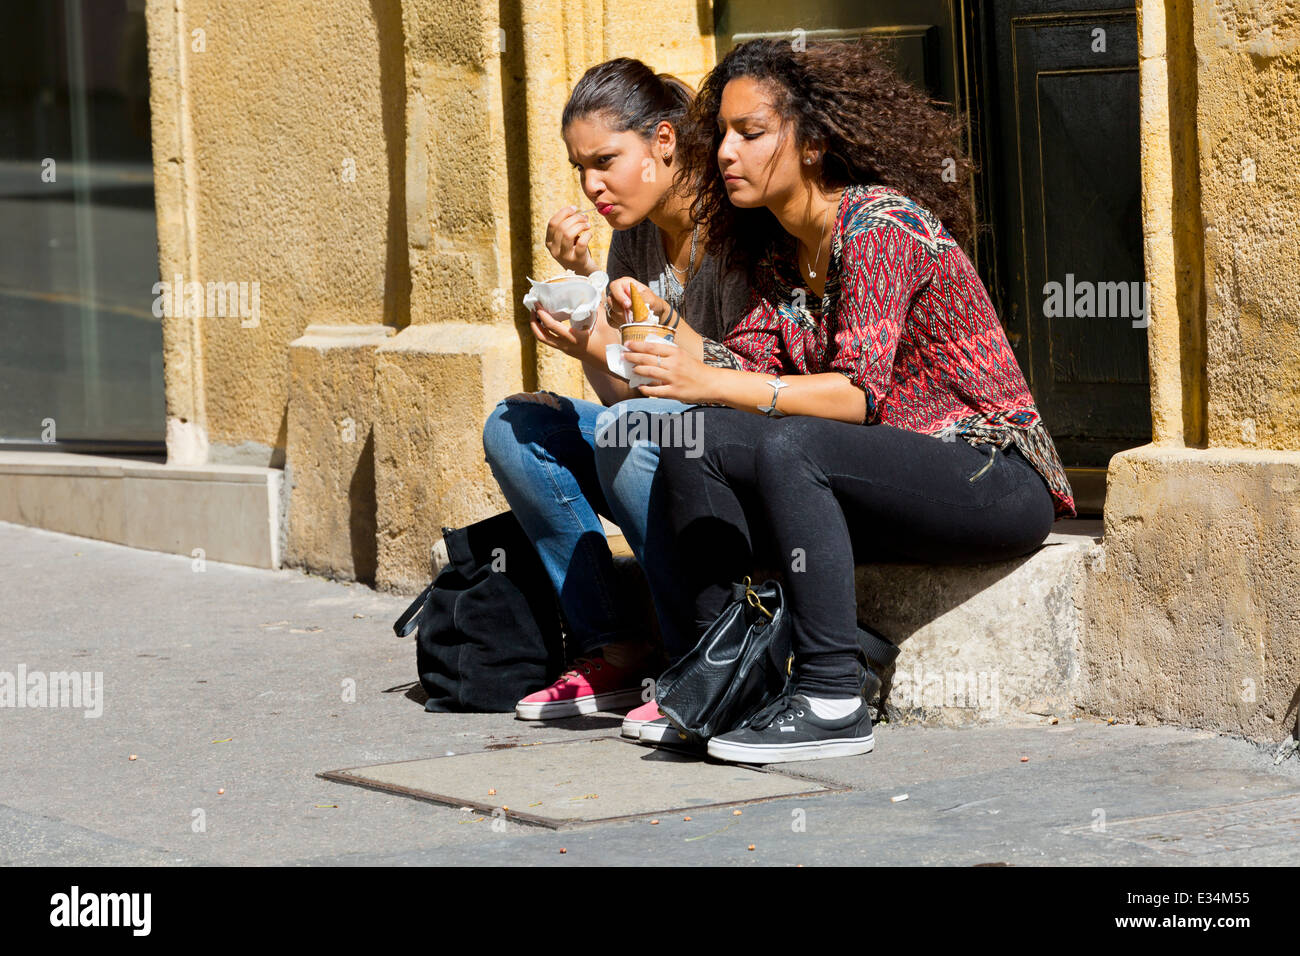 Typical Street Life in Aix-en-Provence, France - Stock Image